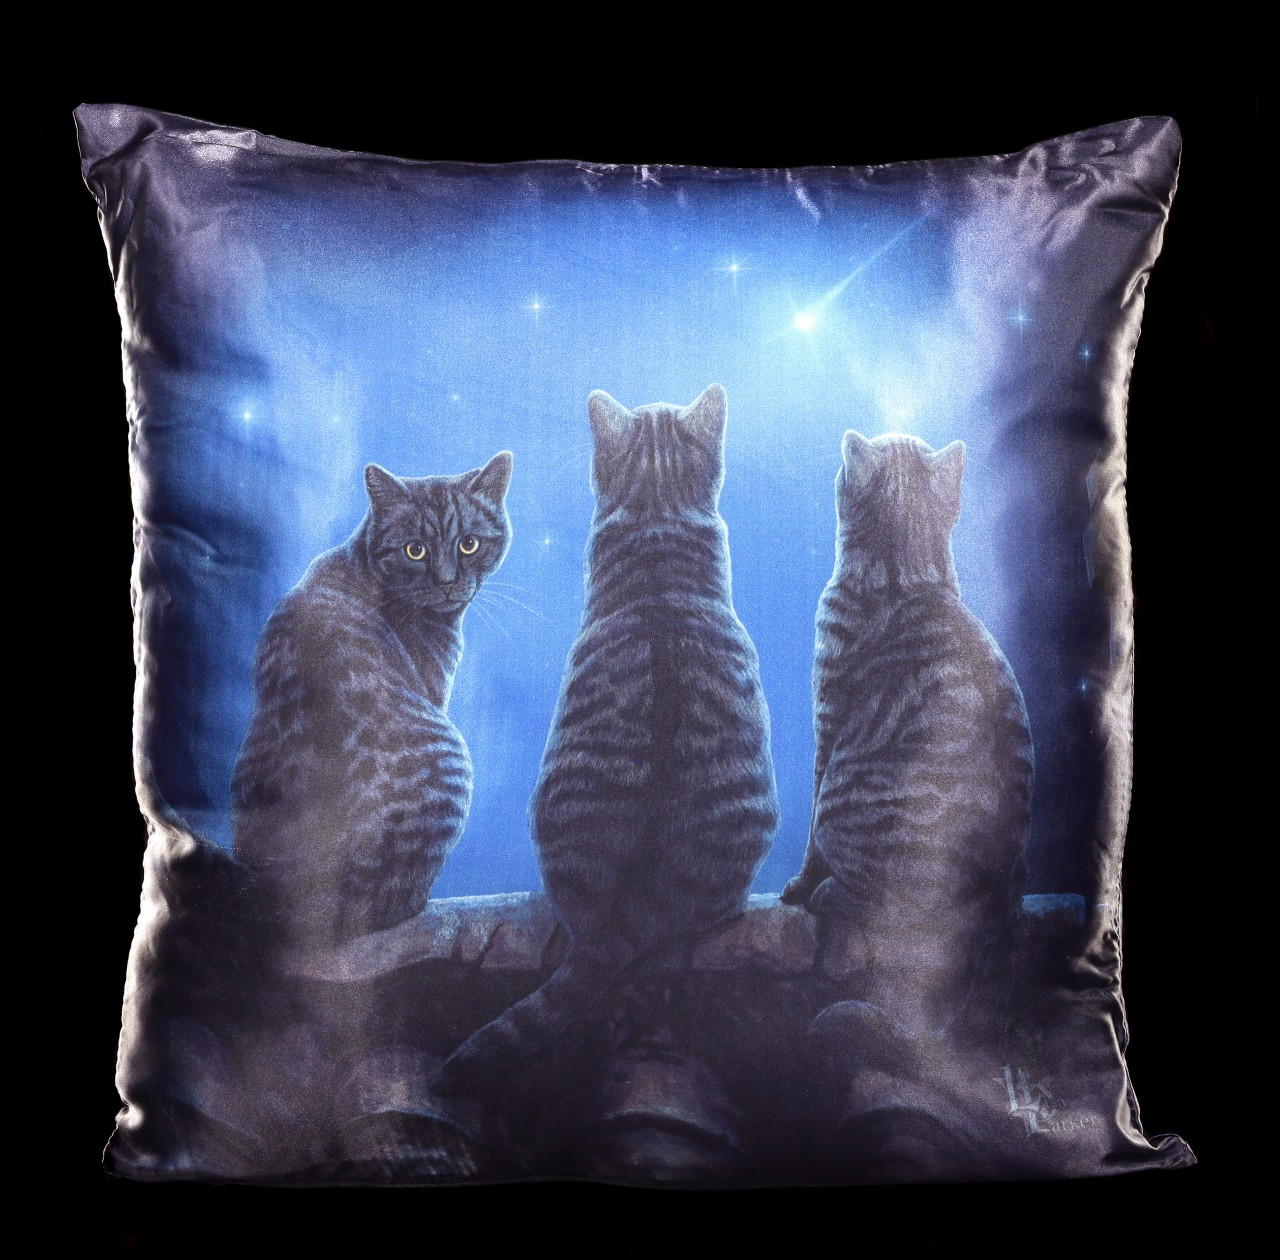 Cushion with Cats - Wish Upon A Star